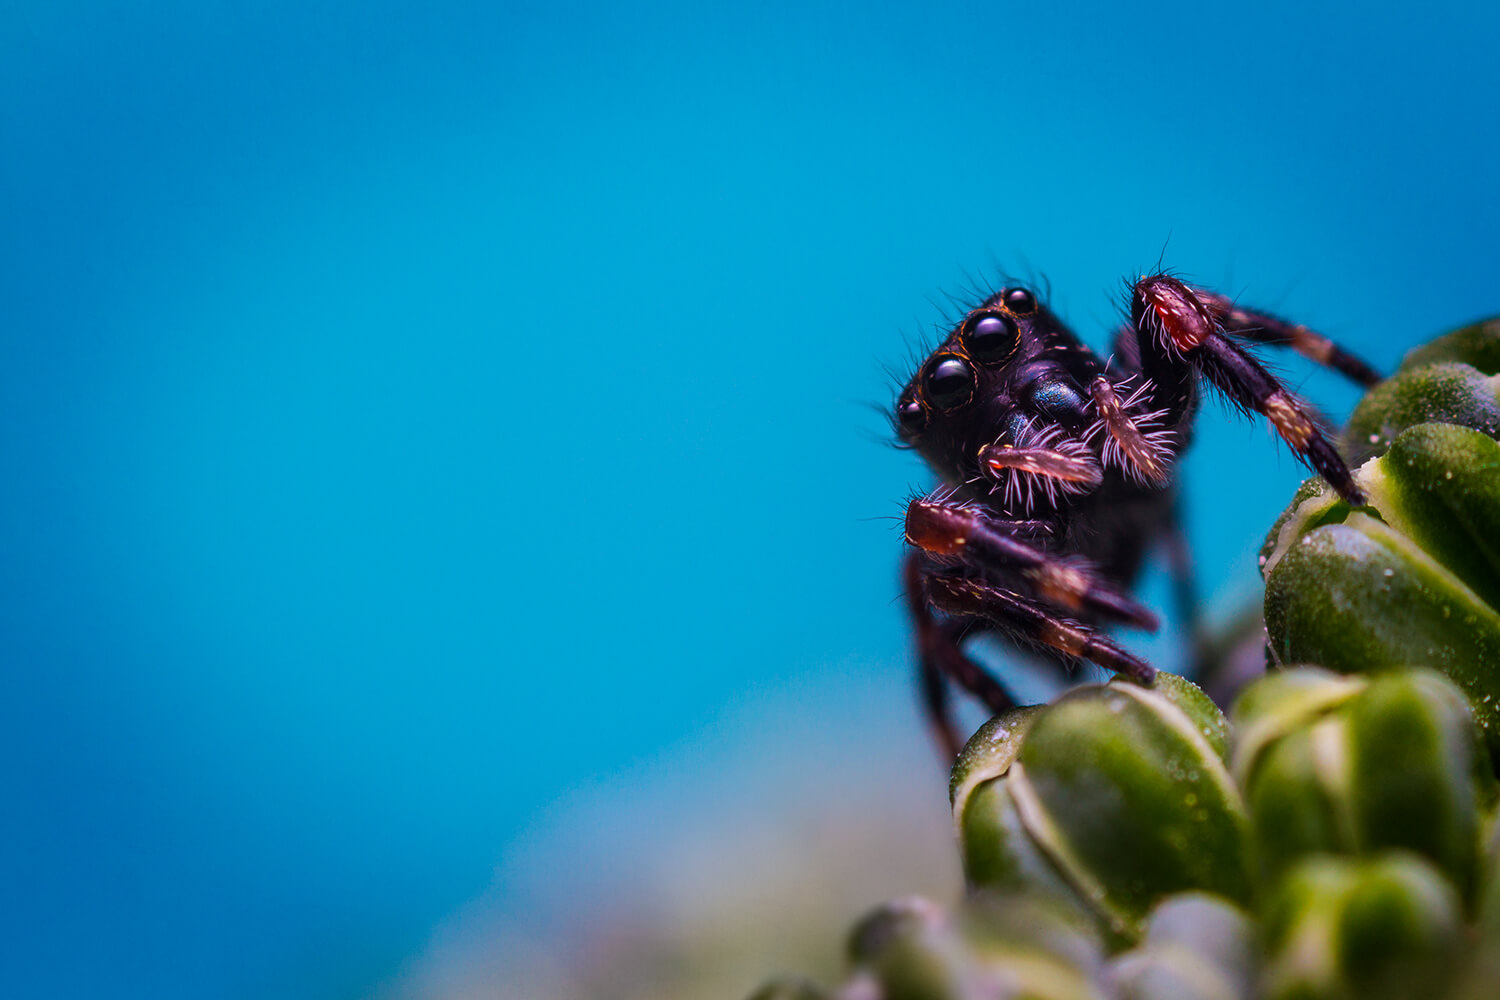 Baby regal jumping spider by Stewart Wood